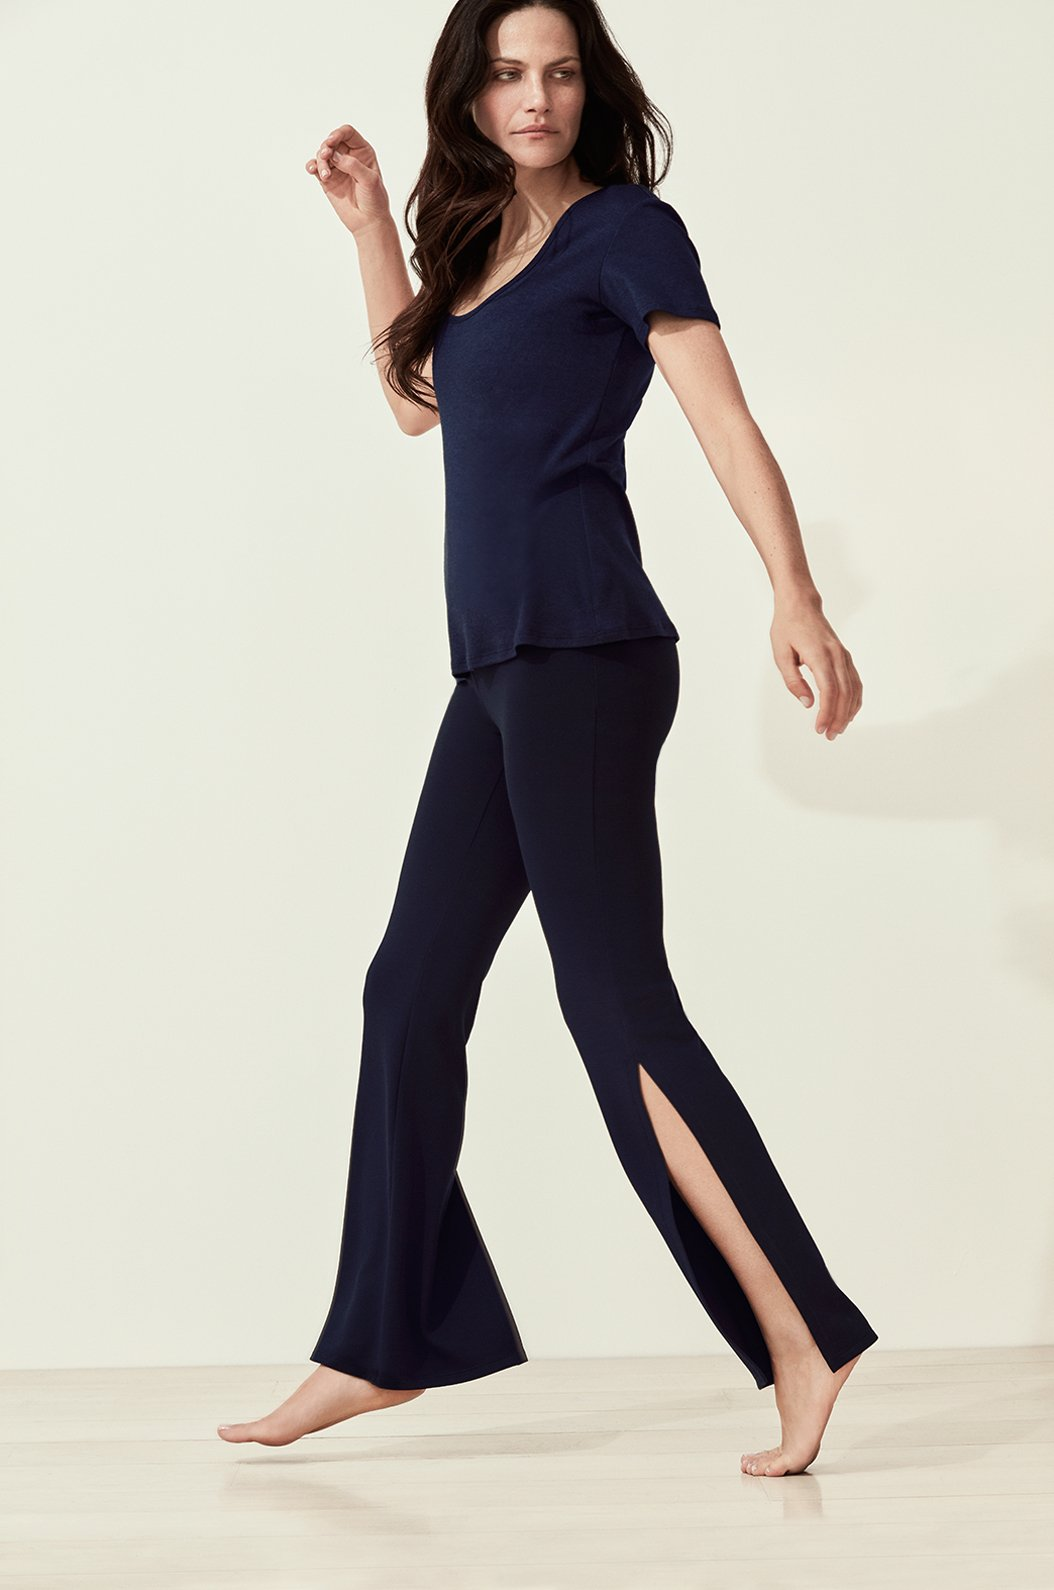 Luxury loungewear - ULTRA HIGH WAIST SIDE SLIT PANT | ROYL